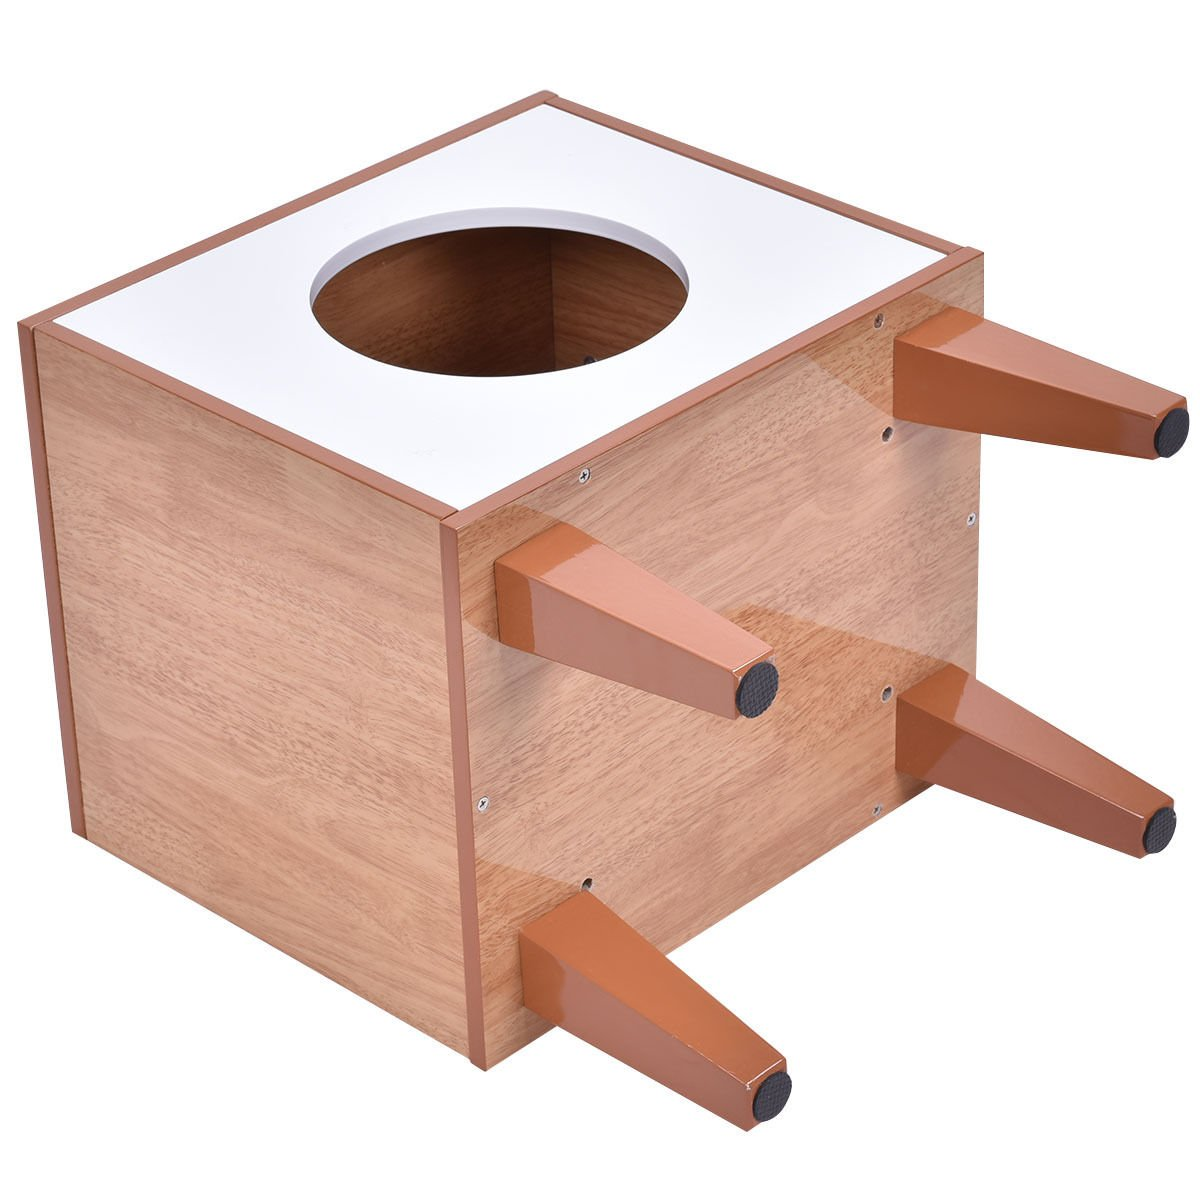 New Cat Box Cushion Bed Cleaning Enclosure Hidden Pet Cabinet Furniture Wood by totoshoppet (Image #5)